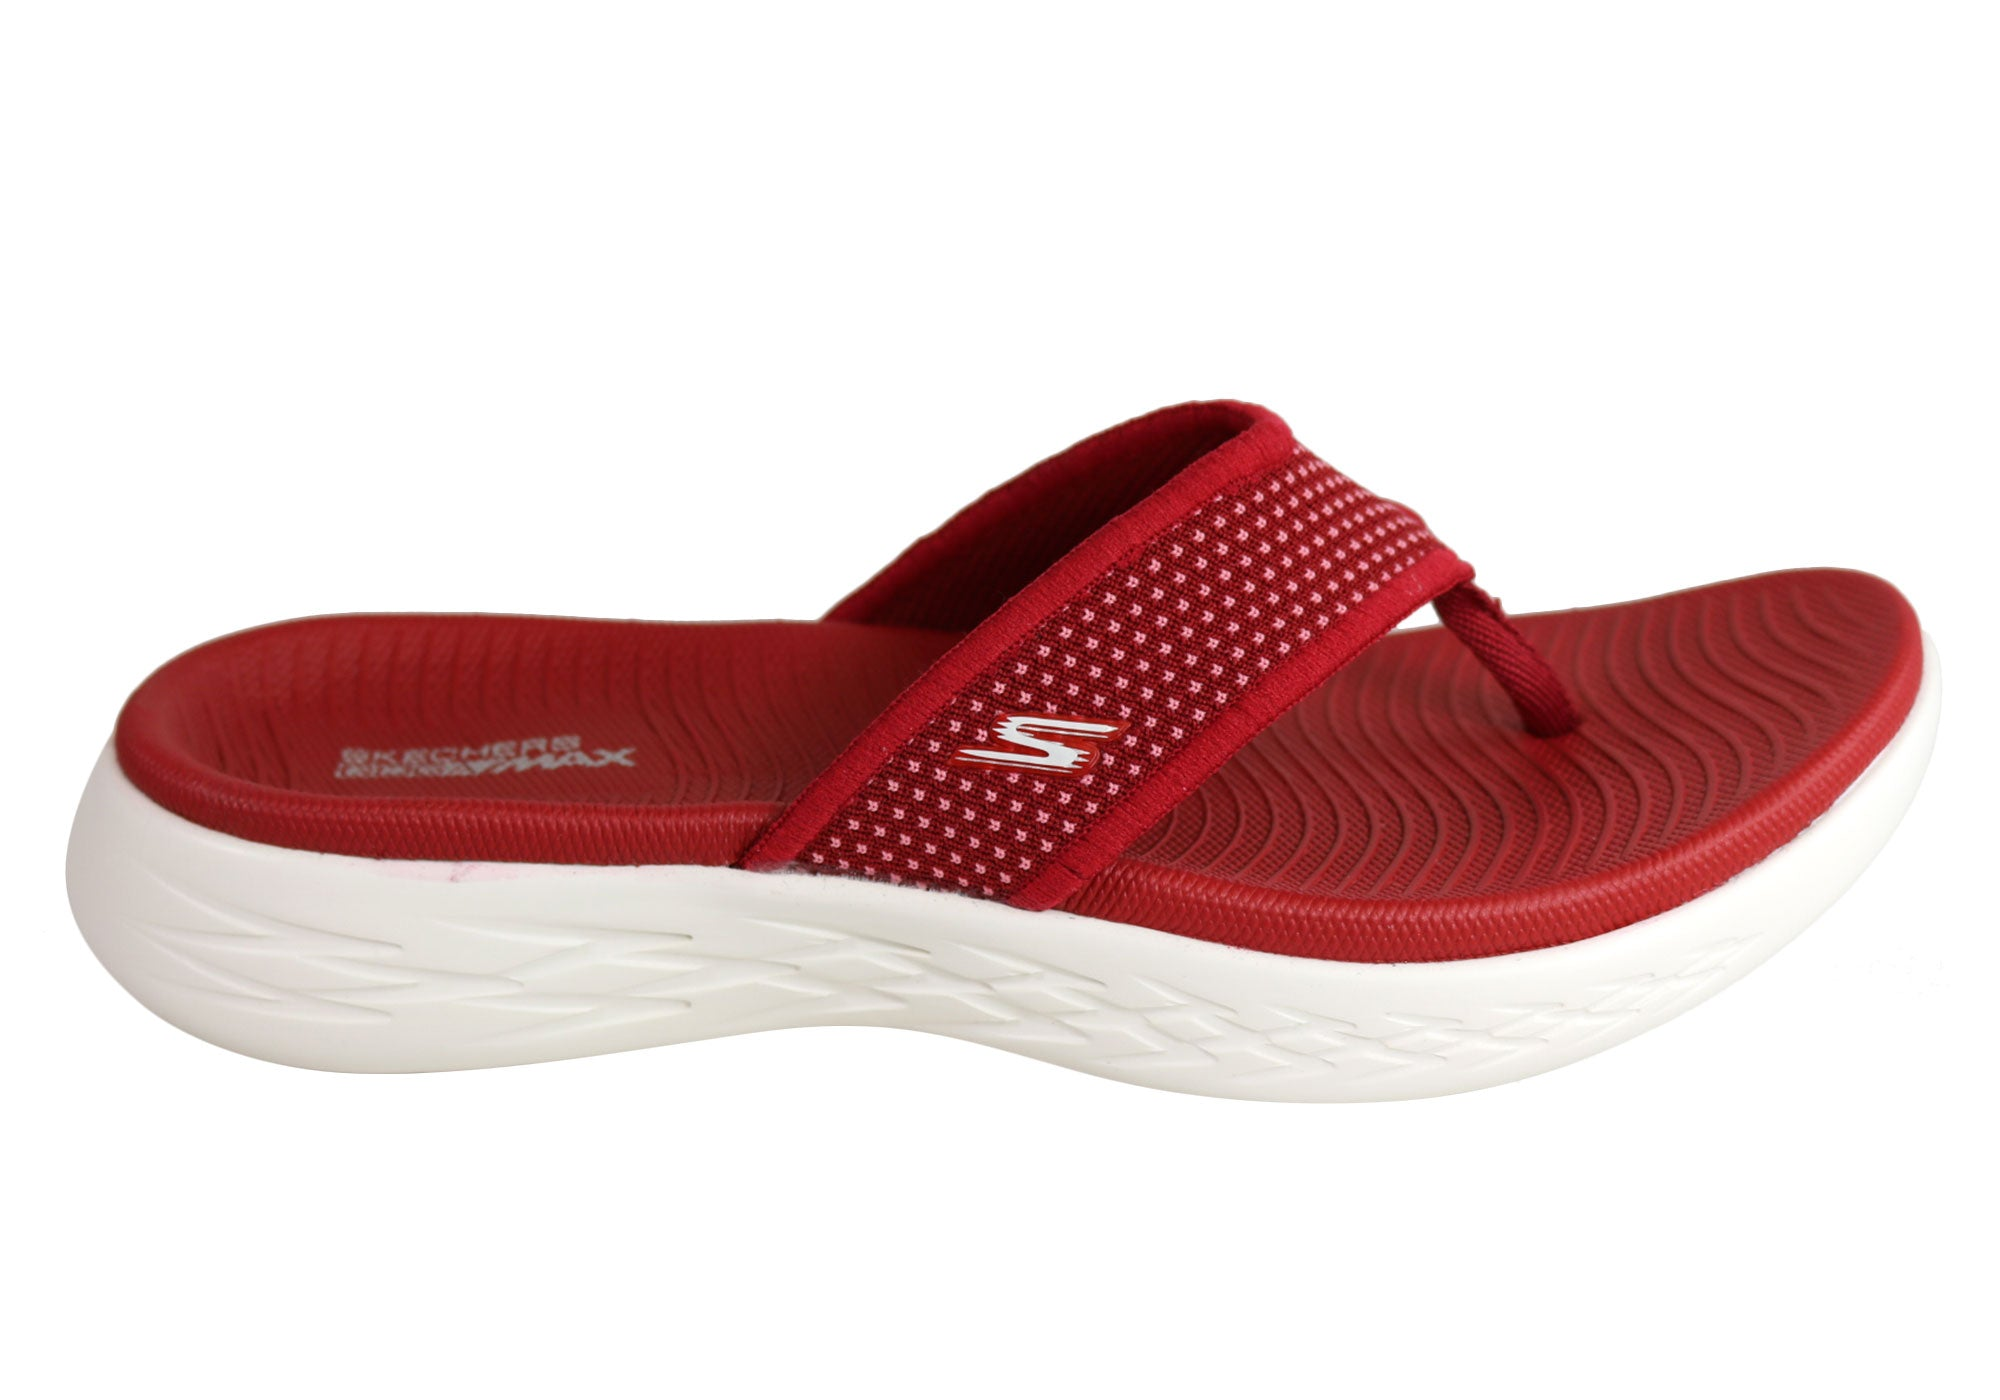 NEW-SKECHERS-WOMENS-ON-THE-GO-600-COMFORTABLE-CUSHIONED-LIGHTWEIGHT-THONGS